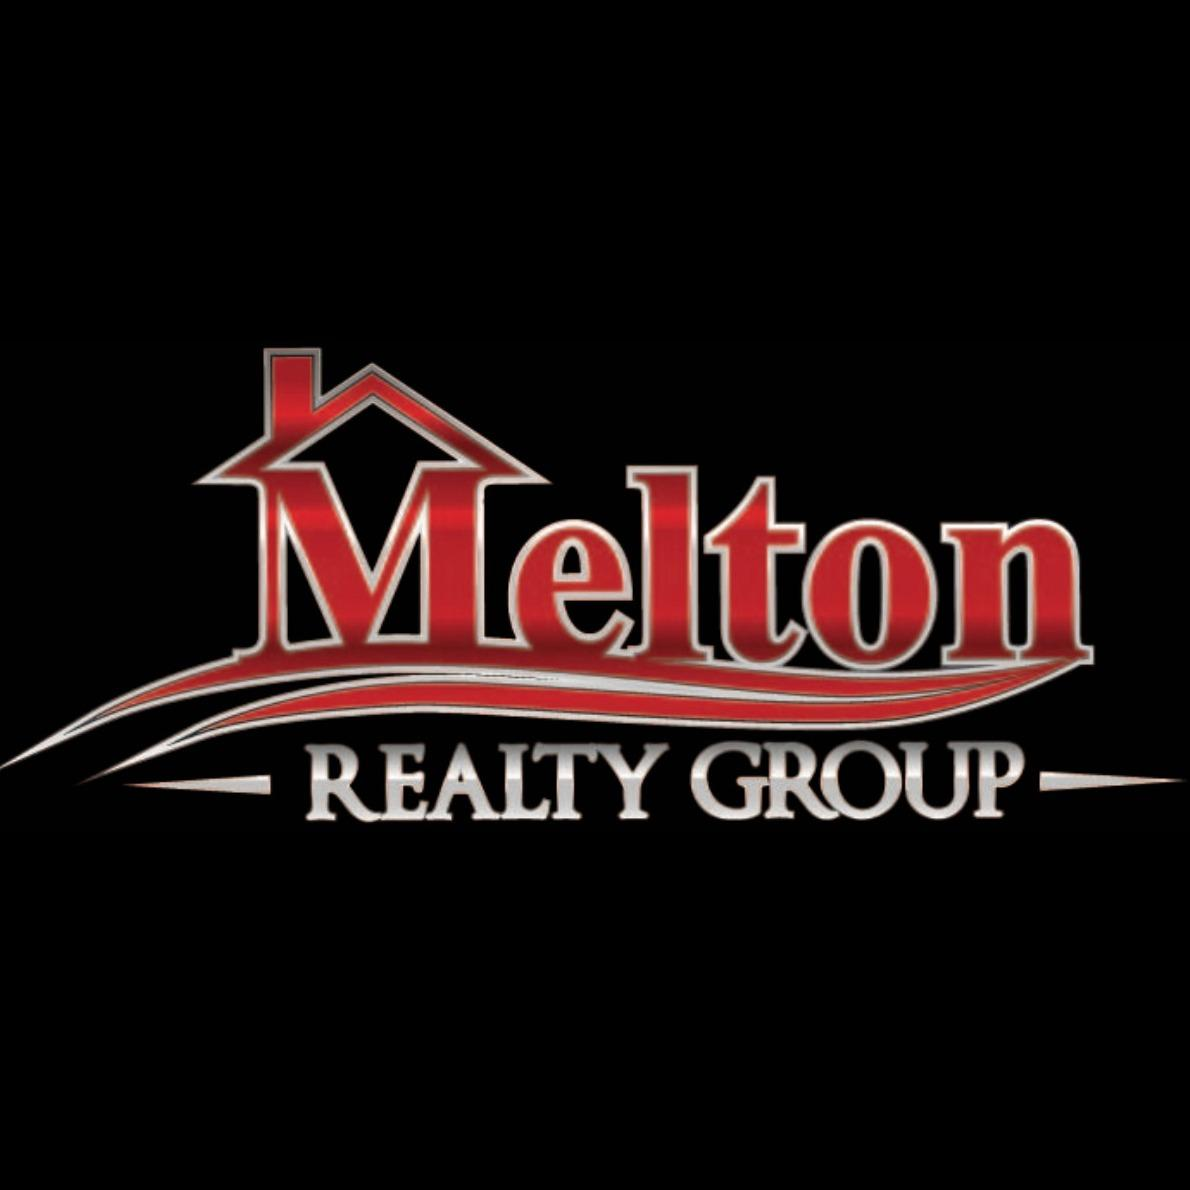 Melton Realty Group